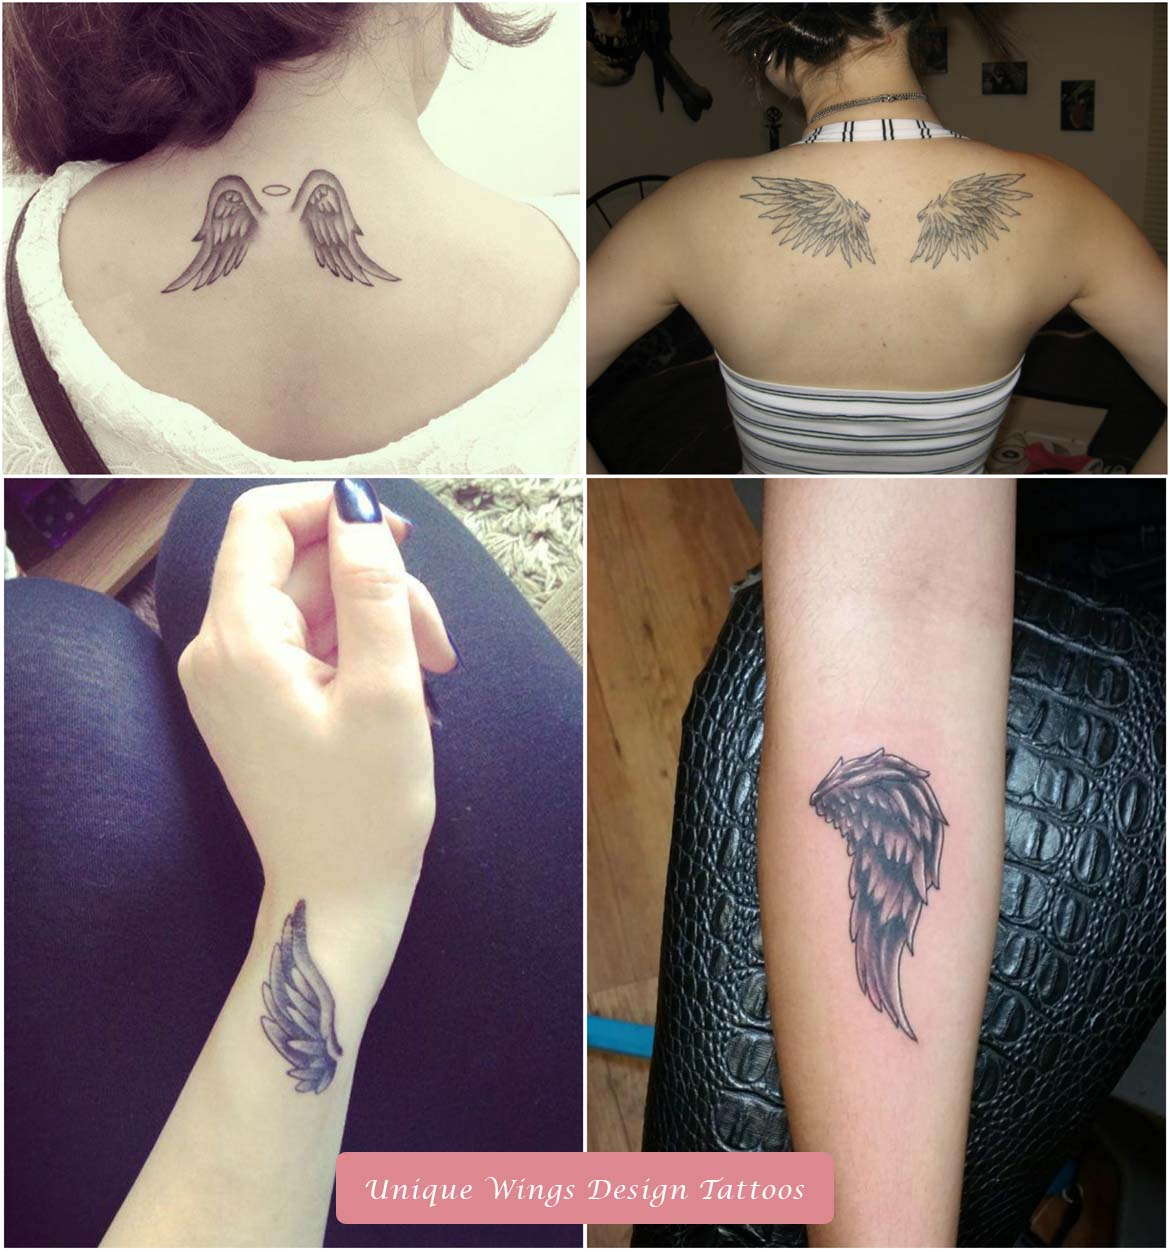 Unique Wings Design Tattoos